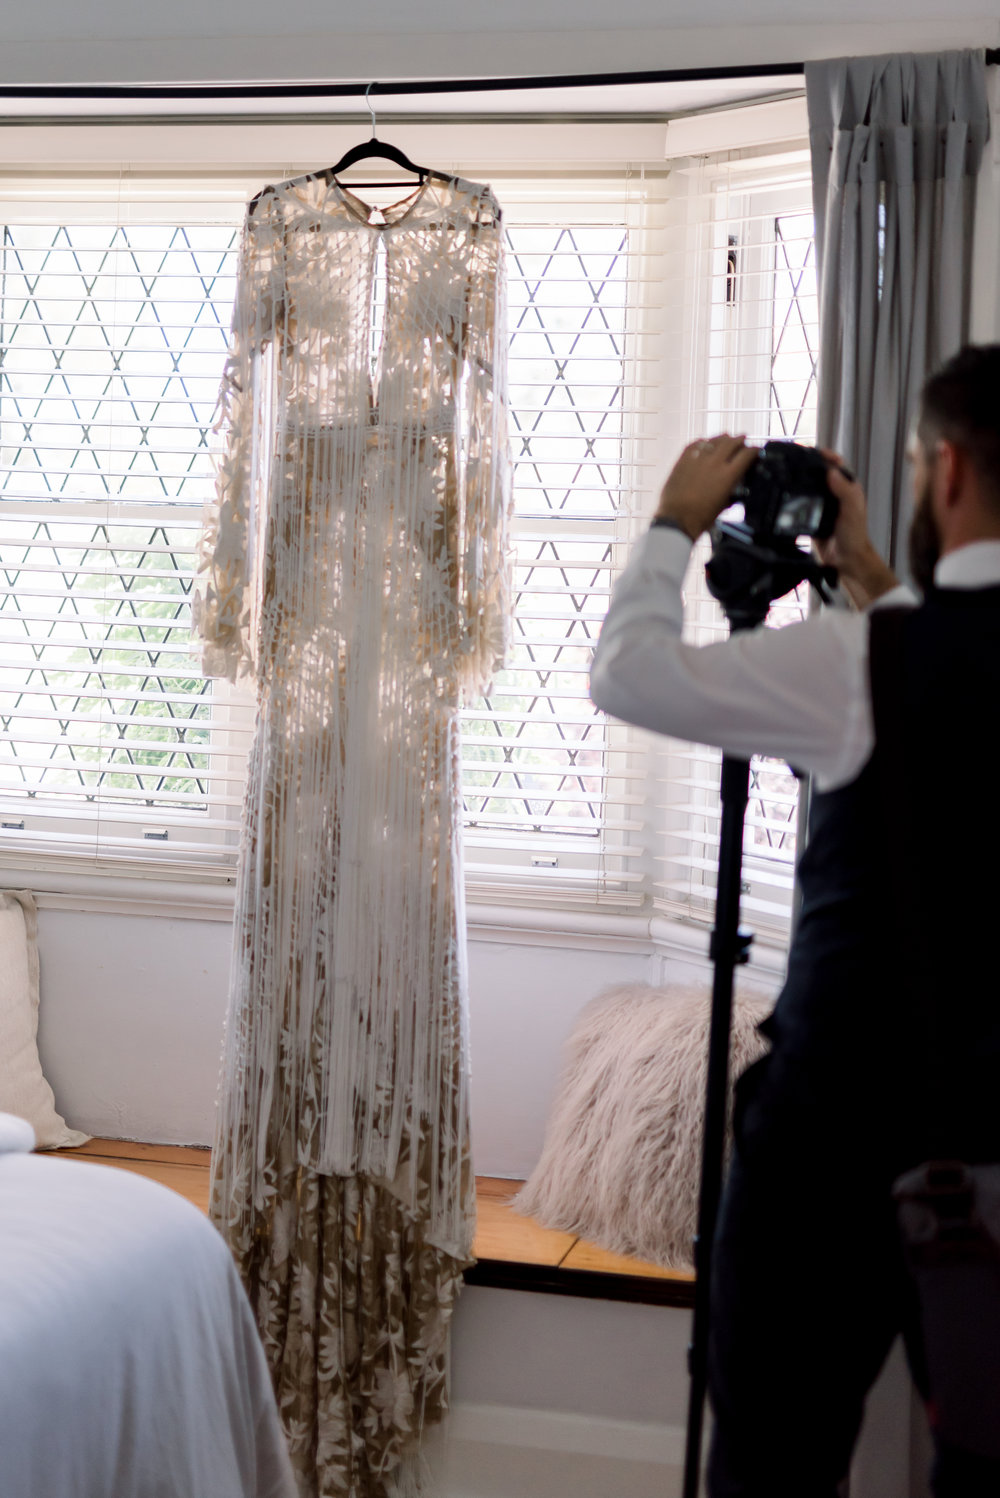 Behind the scenes of a wedding photographer